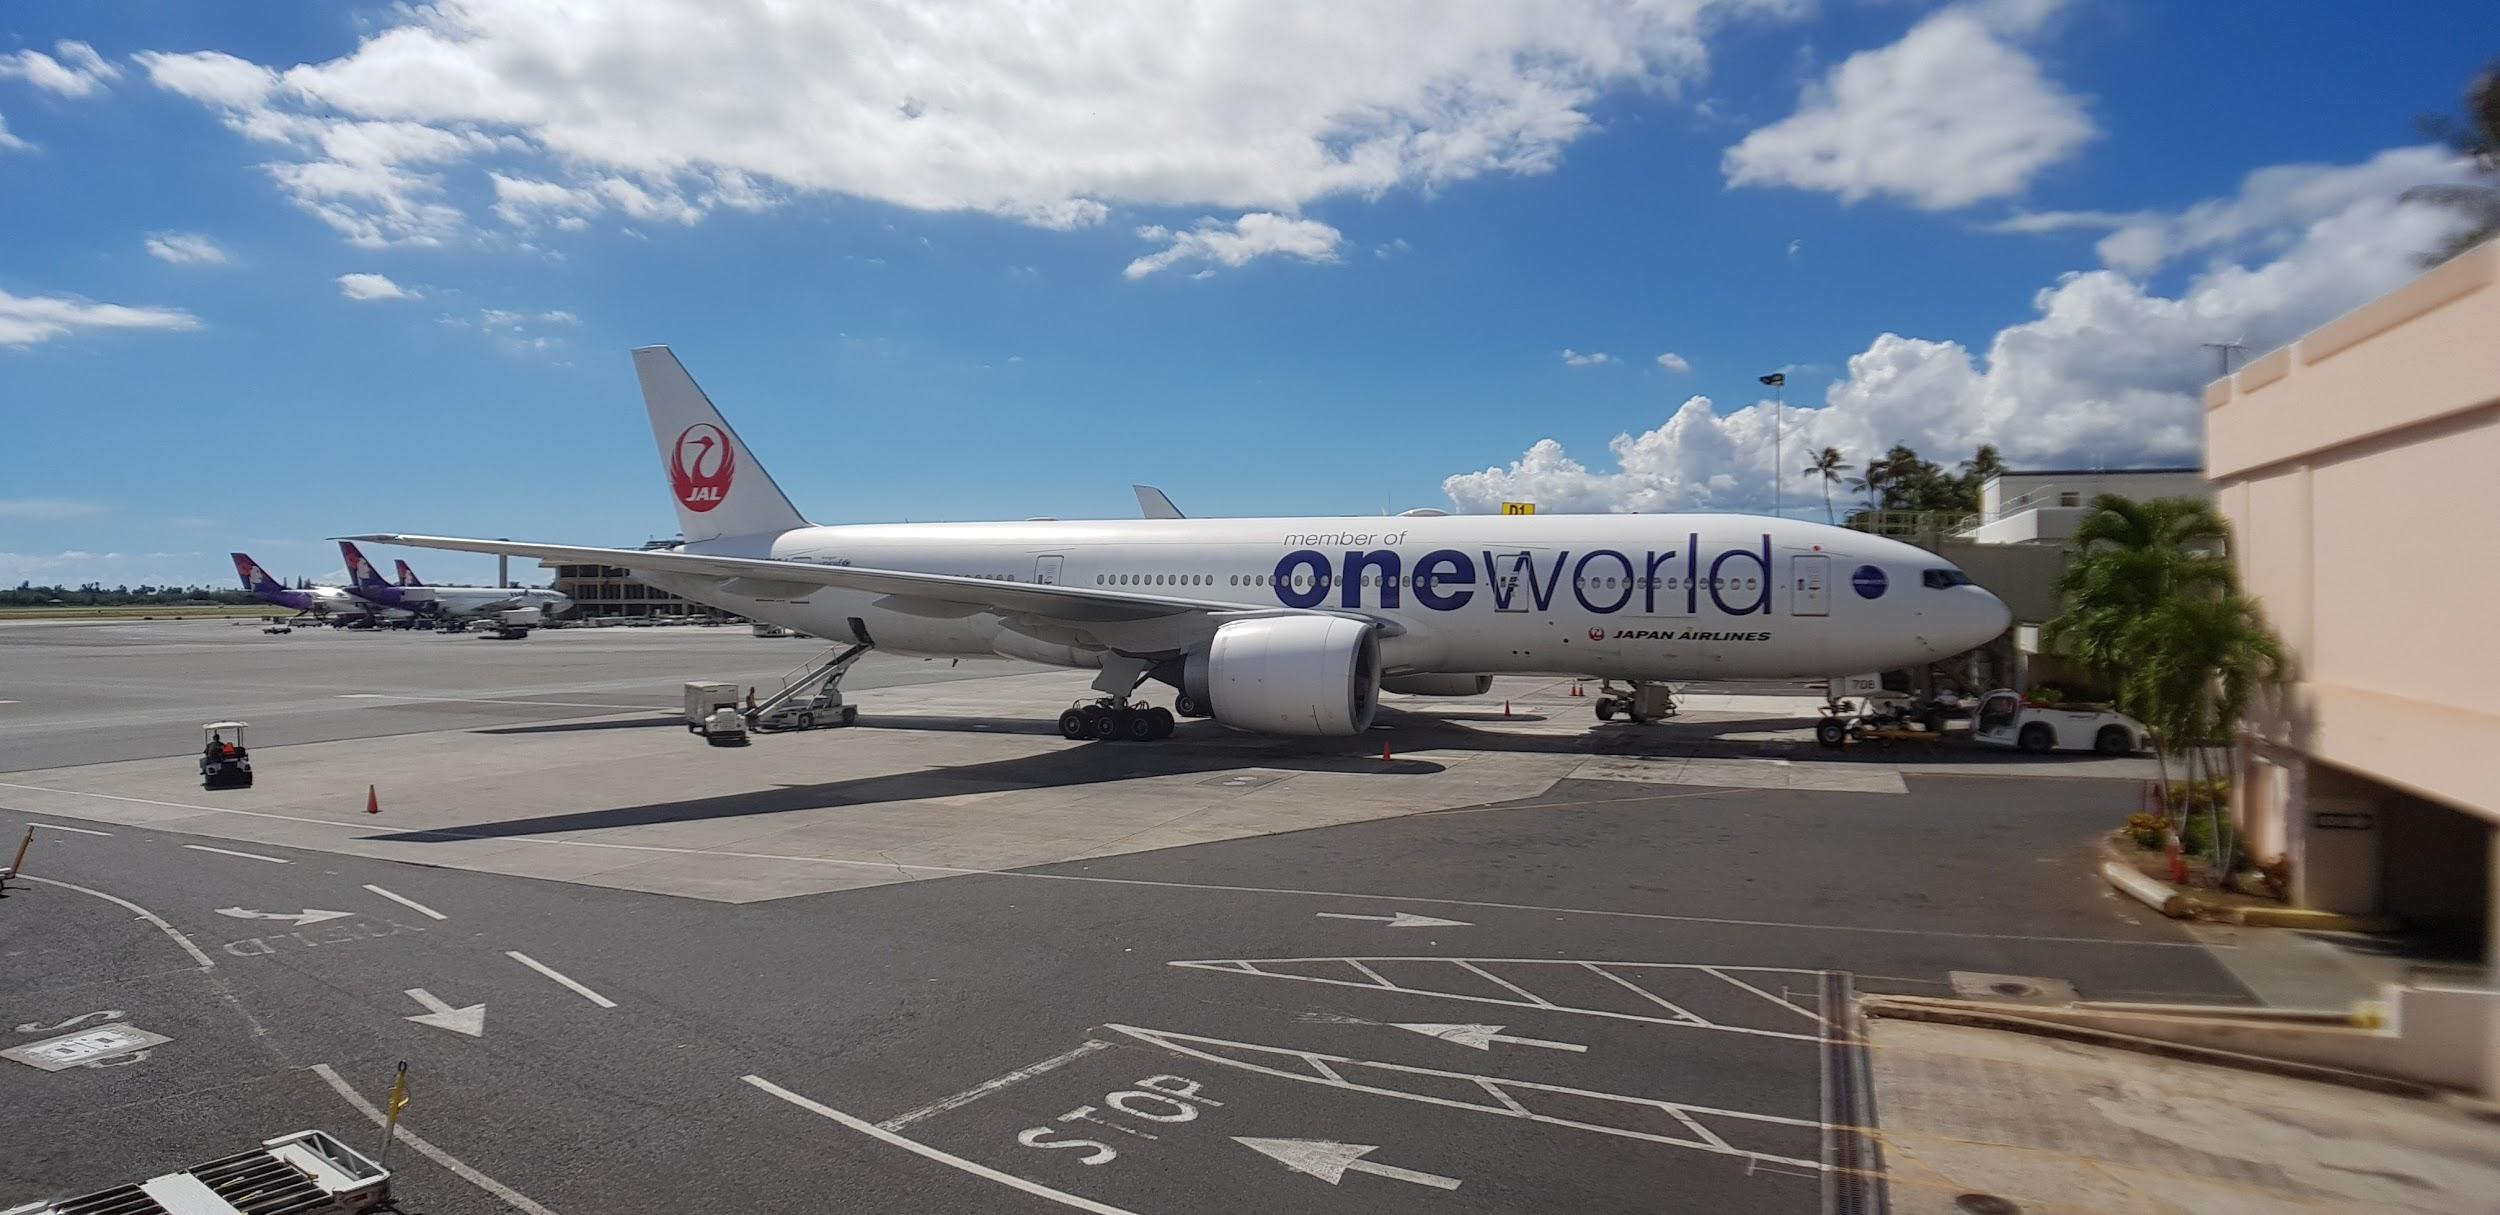 JAL oneworld Airplane | Point Hacks